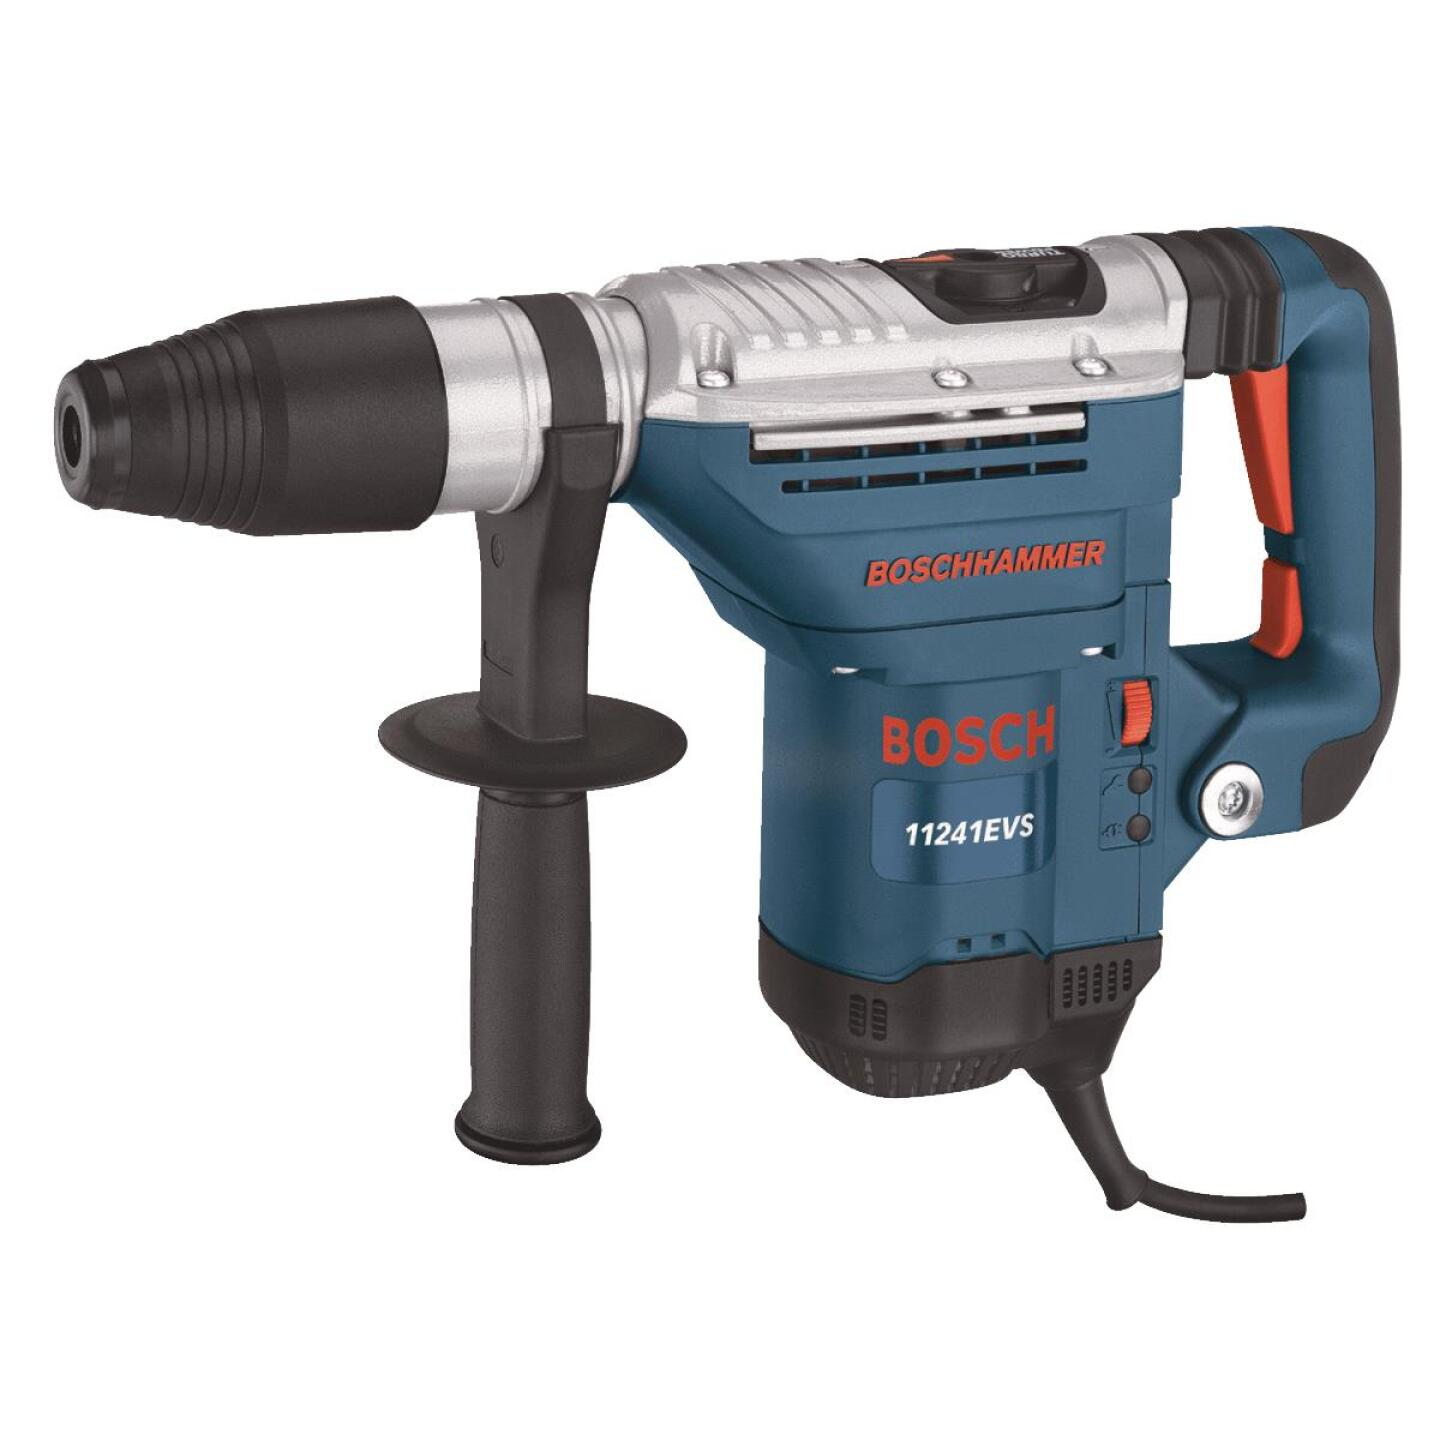 Bosch 1-5/8 In. SDS-Max 3.0-Amp Electric Rotary Hammer Drill Image 1